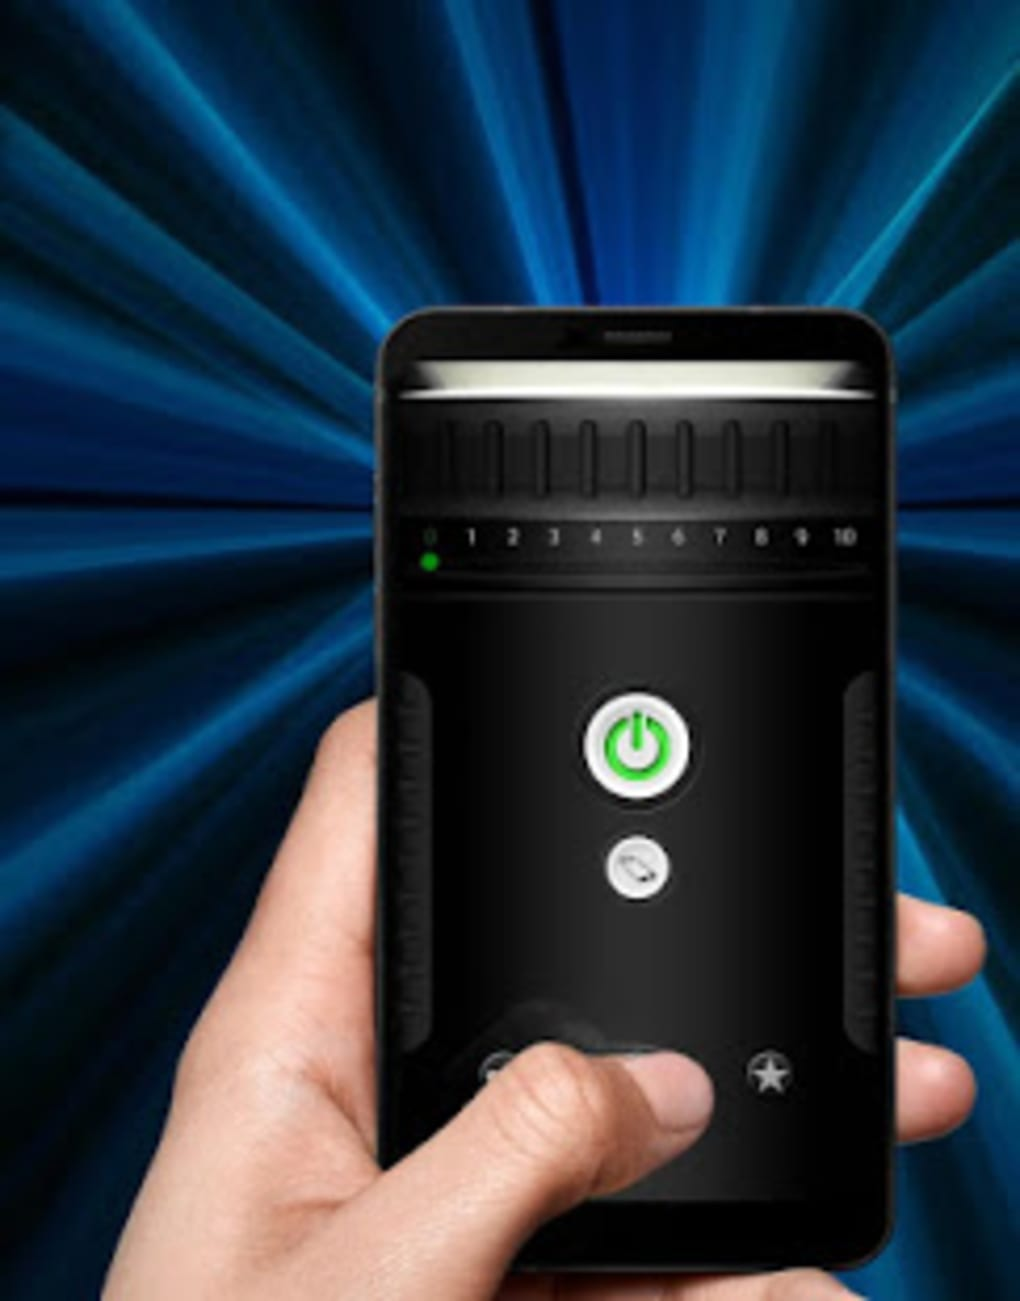 Flashlight Led 2019 - Super bright torch light for Android